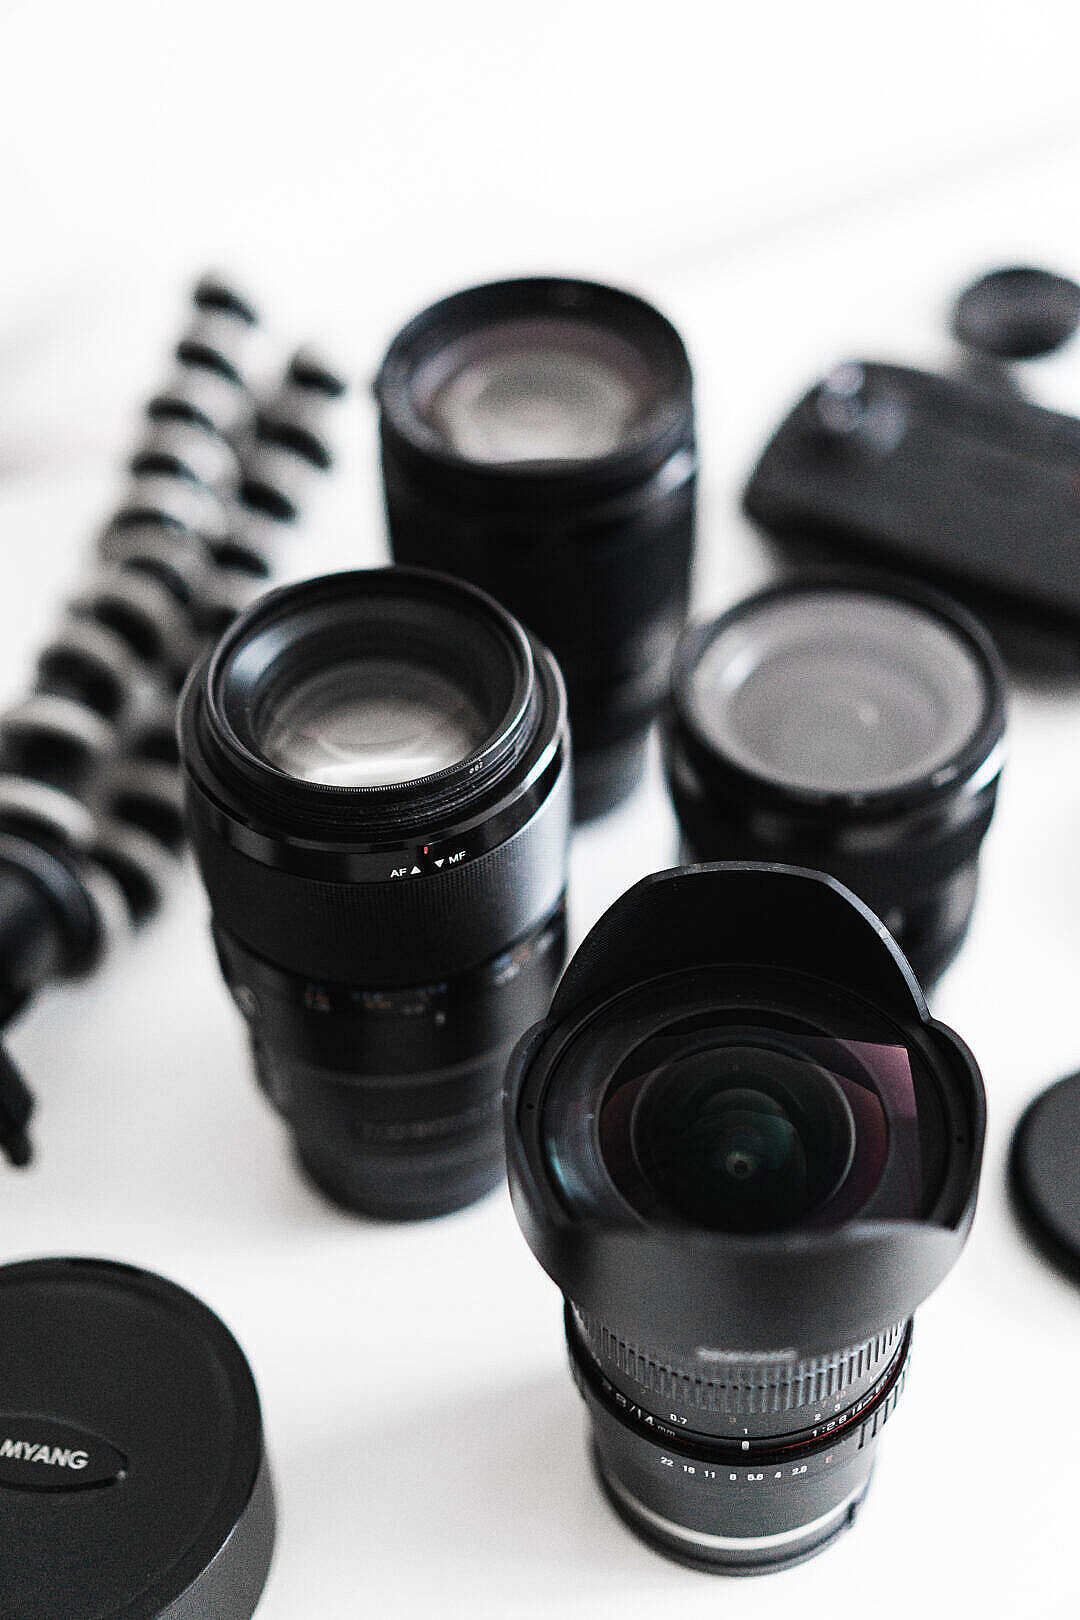 Download Photographer's Gear Lenses FREE Stock Photo